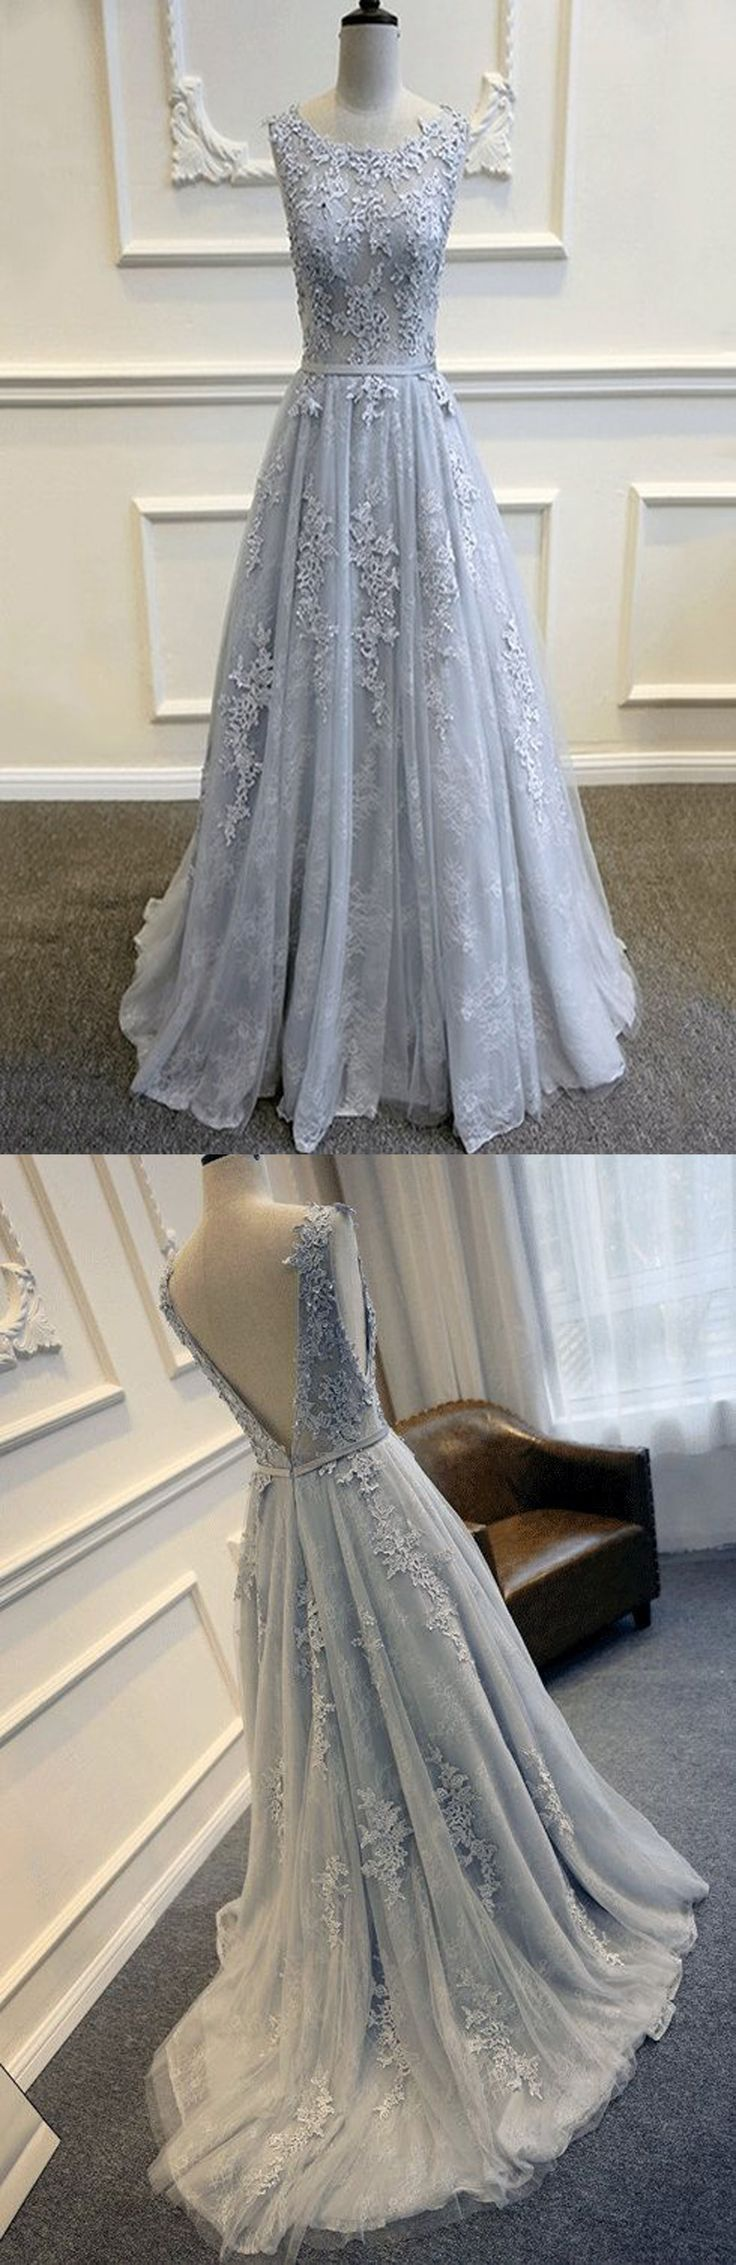 A-Line Appliques Prom Gown,Sexy A-Line Prom Dress,Long Prom Dresses,Cheap Prom Dresses,Evening Dress Prom Gowns,Formal Women Dress,Prom Dresses,HG879